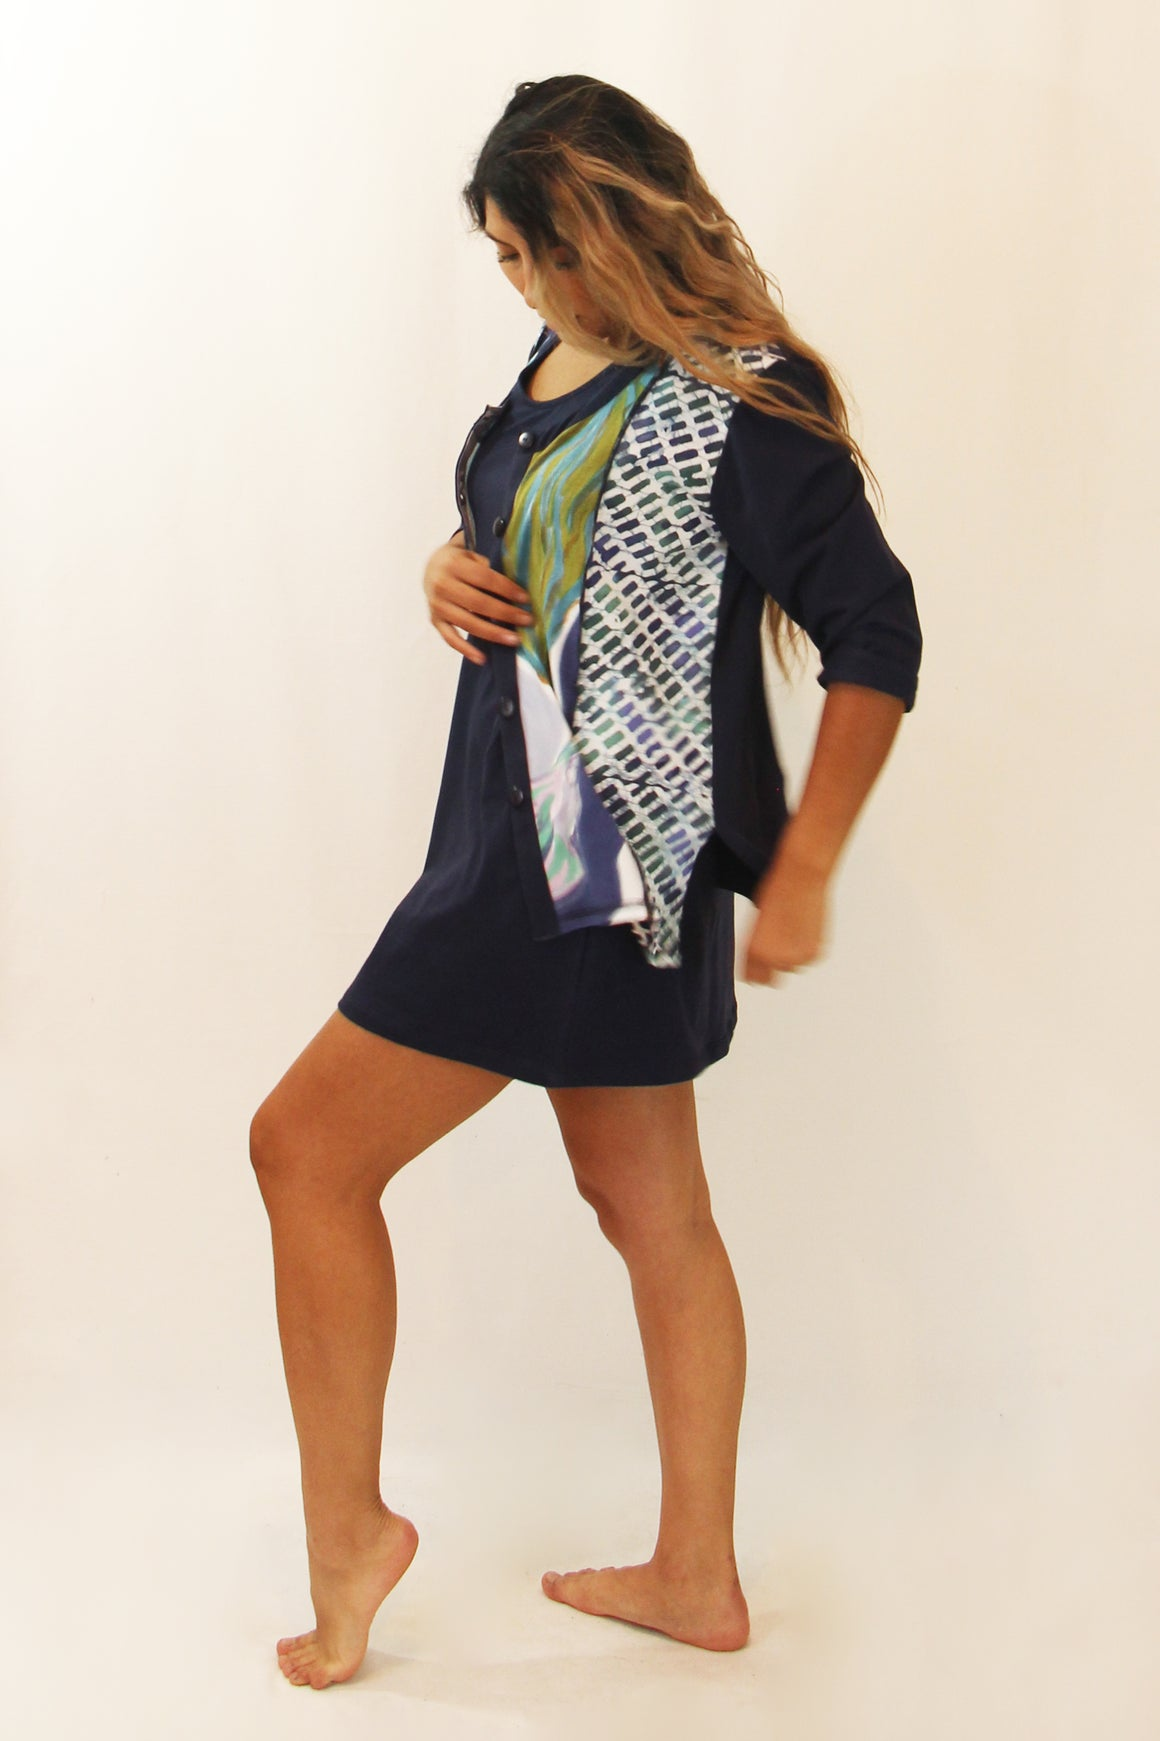 Blue Magnolia- Jacket, Dress, Leggings - WS 3 Piece Outfit